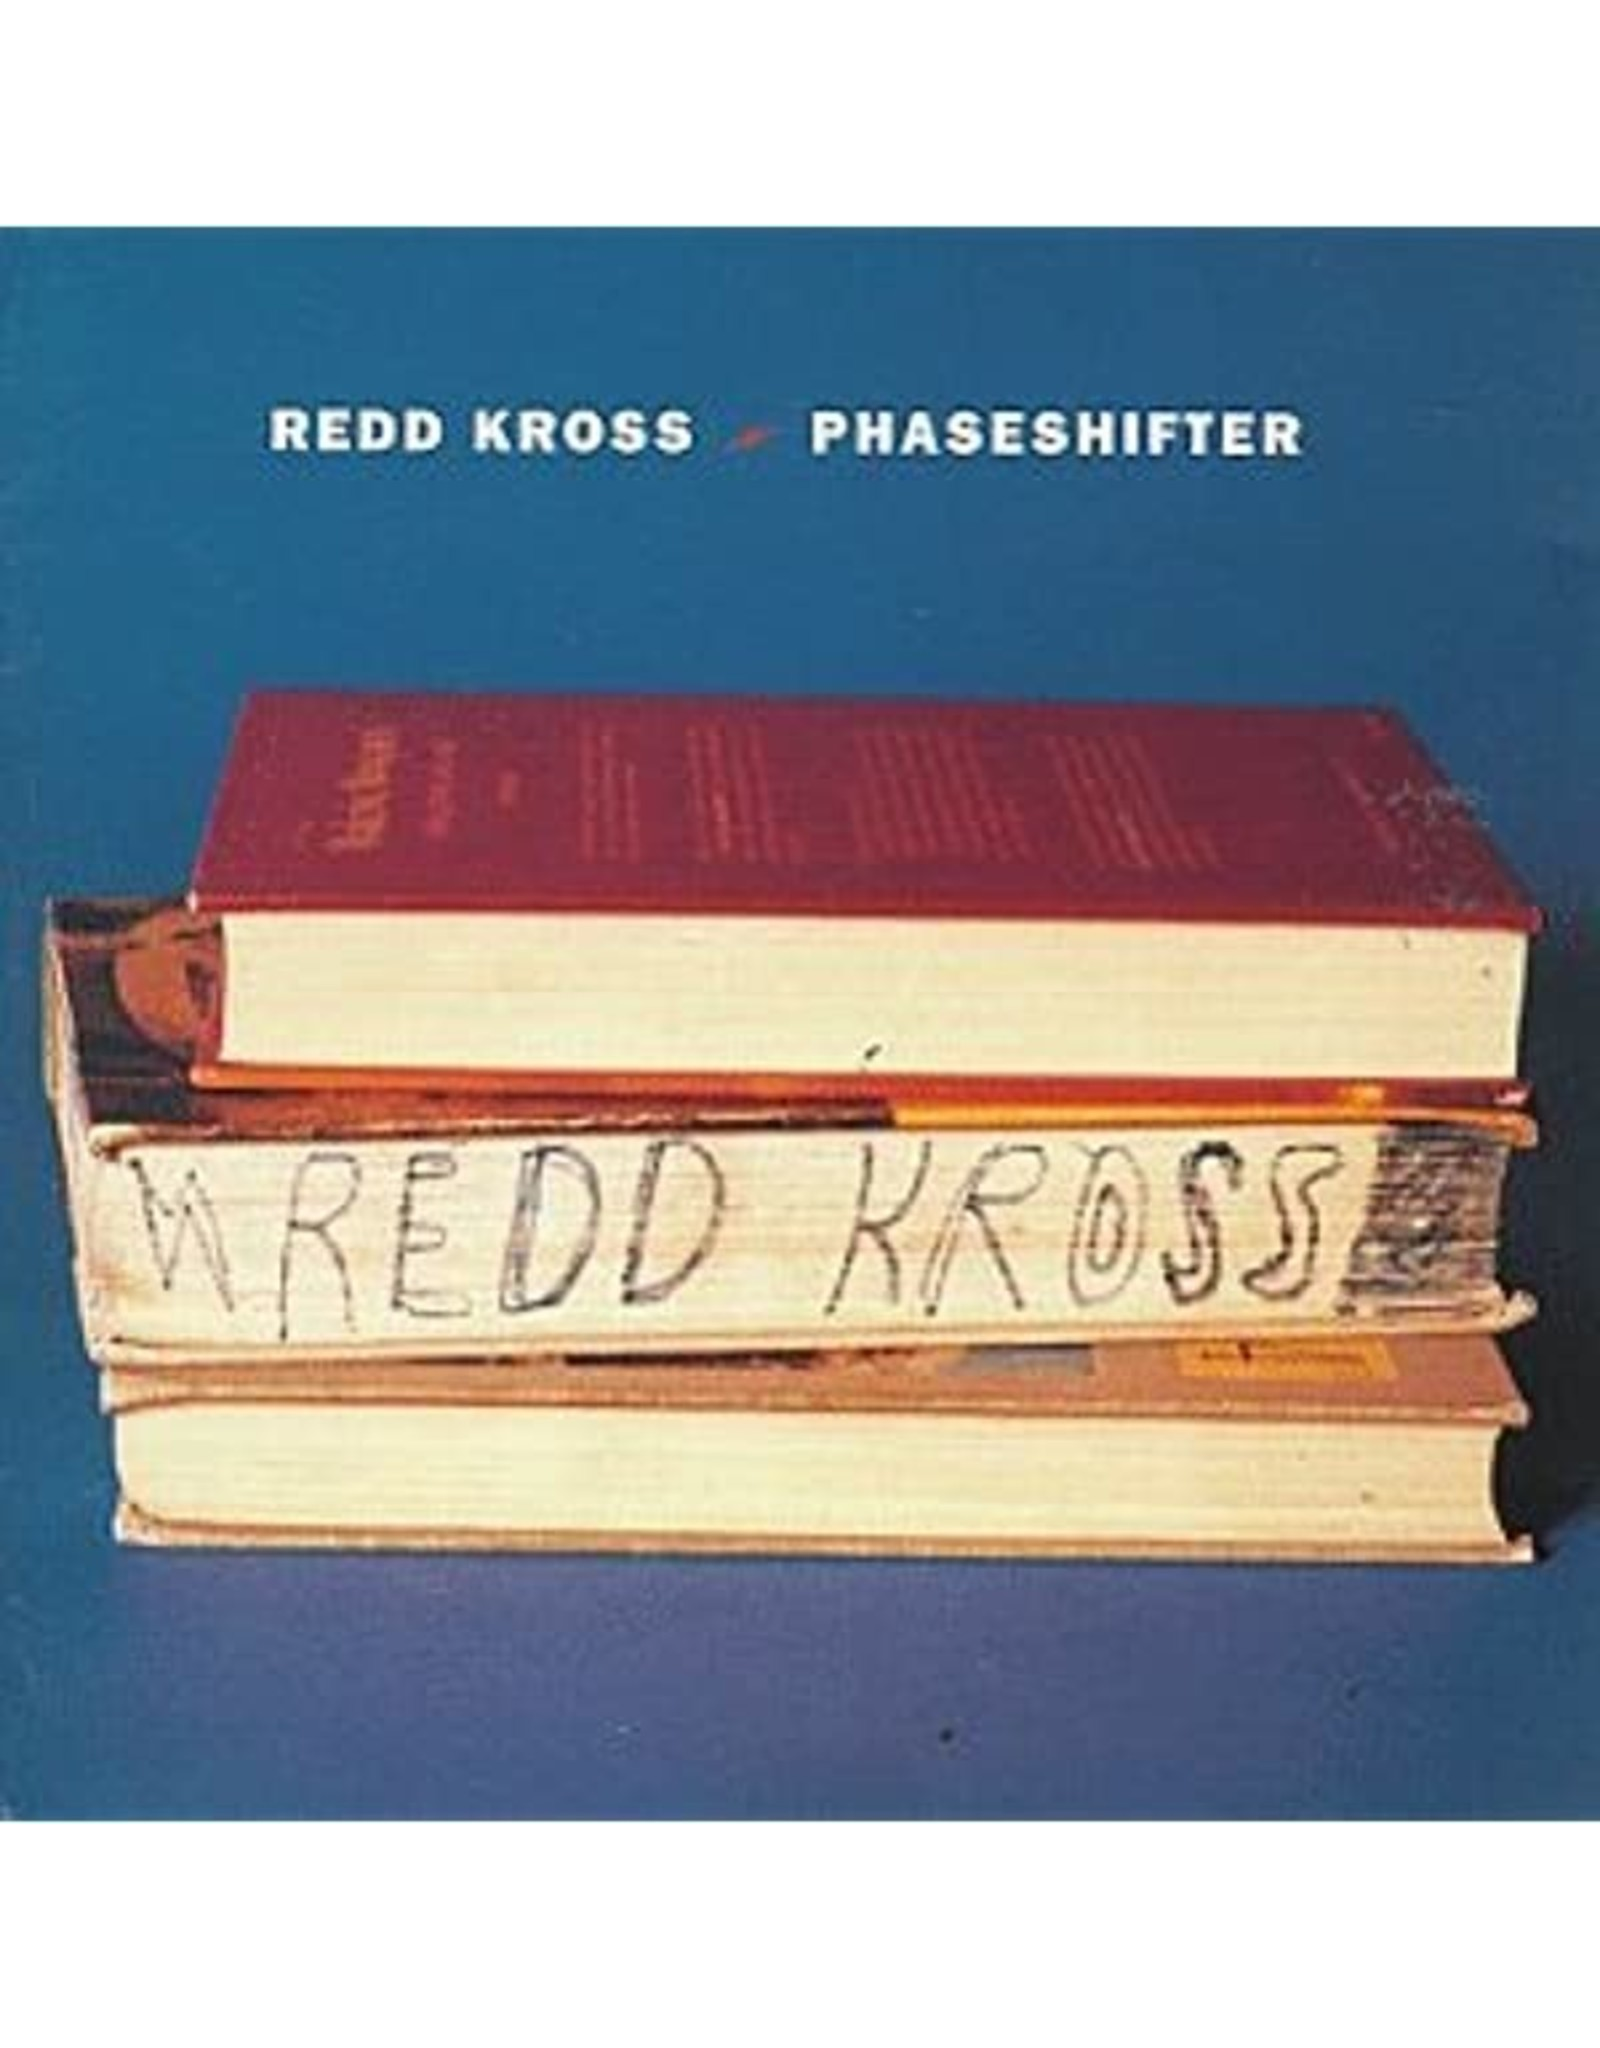 New Vinyl Redd Kross - Phaseshifter LP